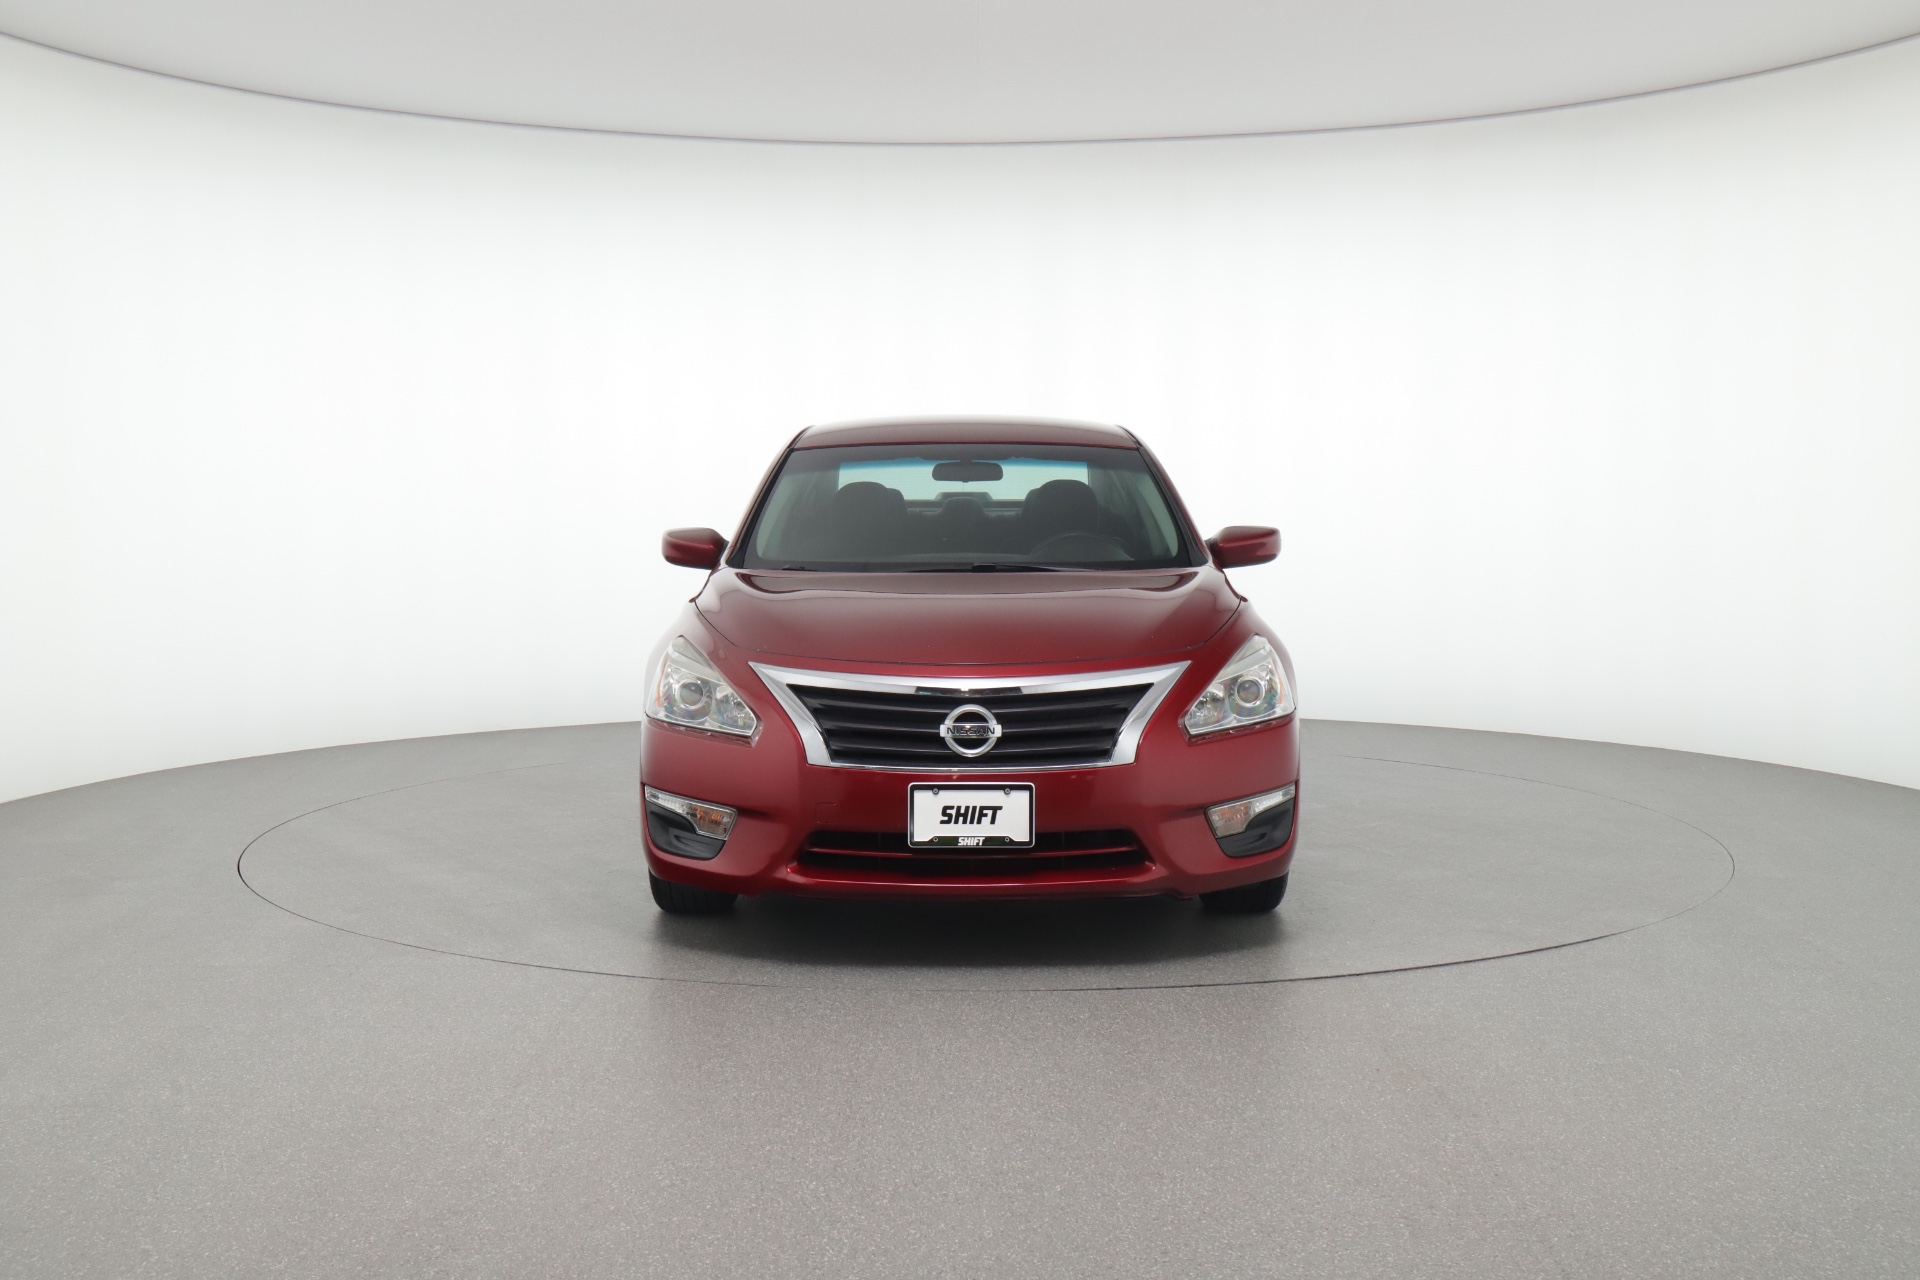 2013 Nissan Altima 2.5 S (from $10,950)